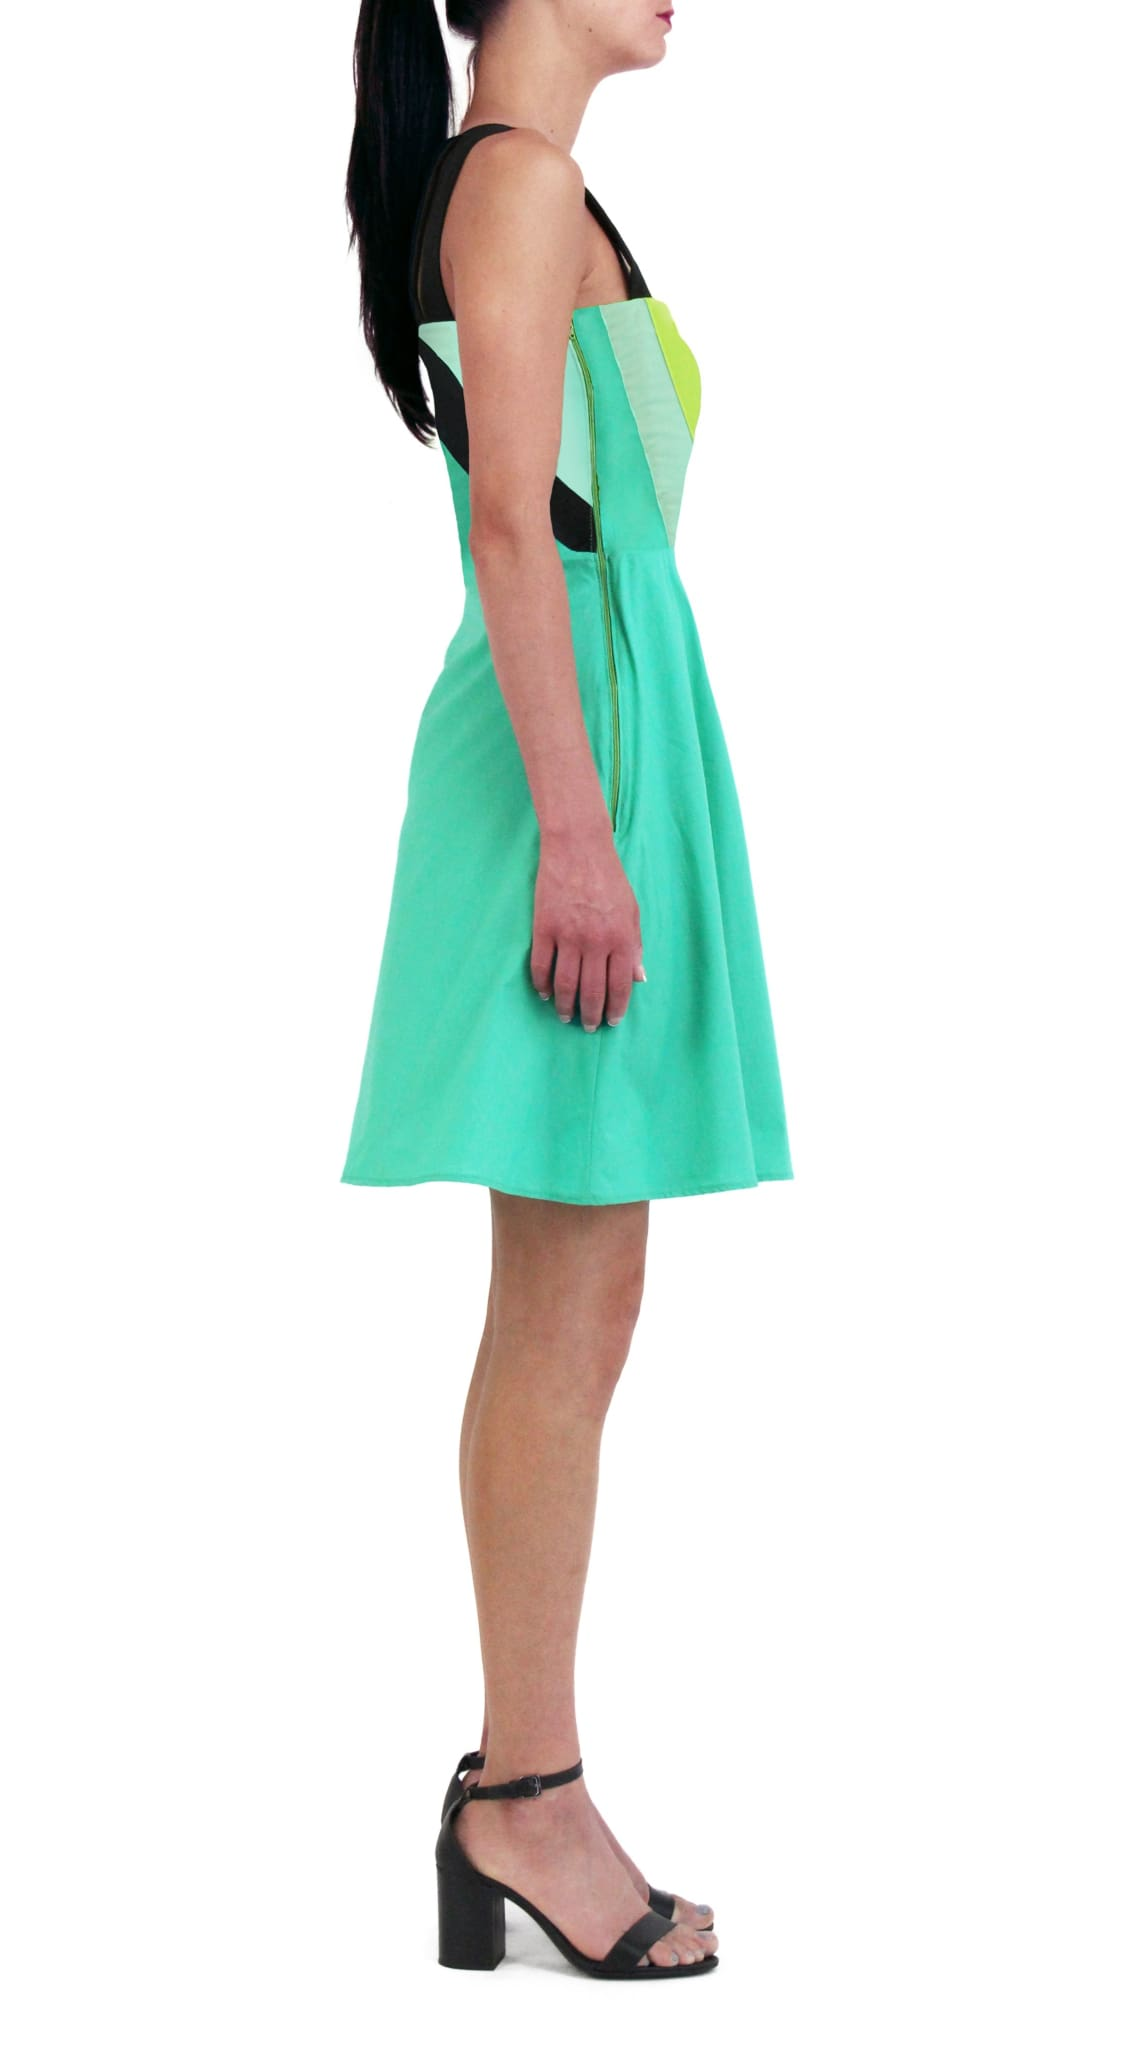 Green Triangle Dress by Meghan Hughes Nineteenth Amendment